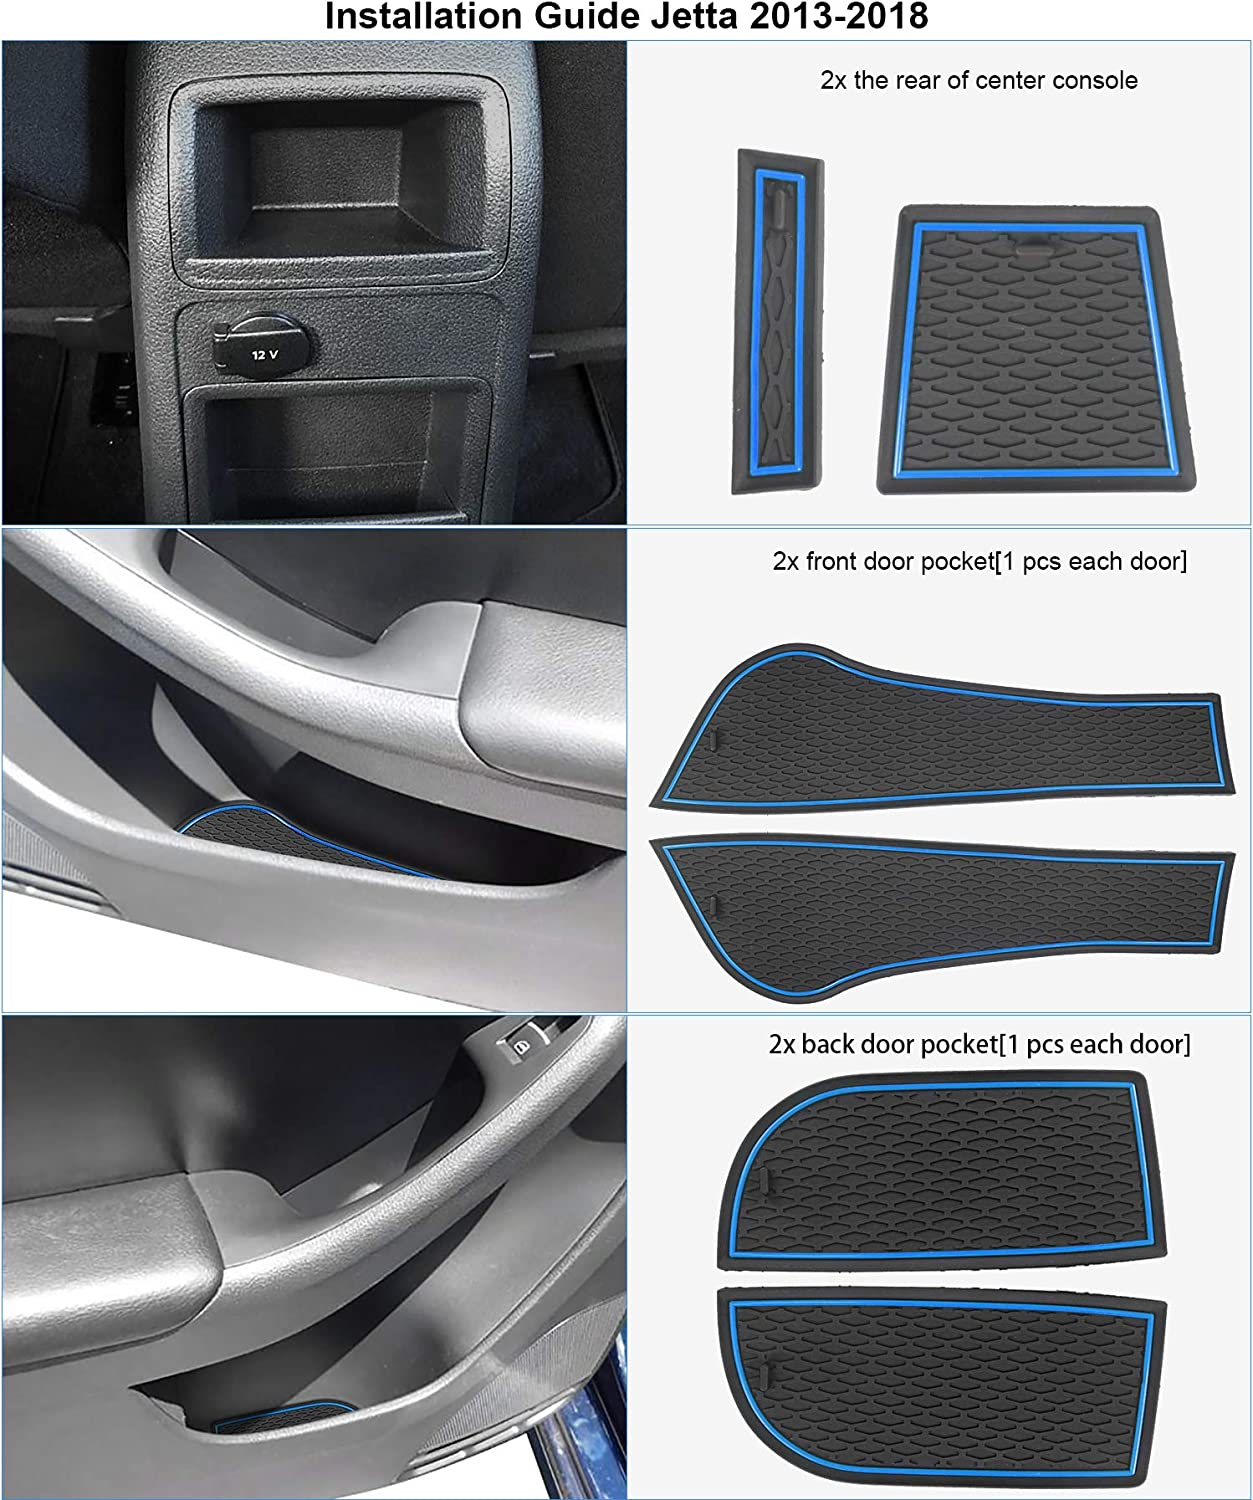 9pcs//Set Auovo Anti Dust Mats for Volkswagen Jetta 2013-2018 Custom Fit Door Compartment Liners Cup Holder Console Liners Interior Accessories Red